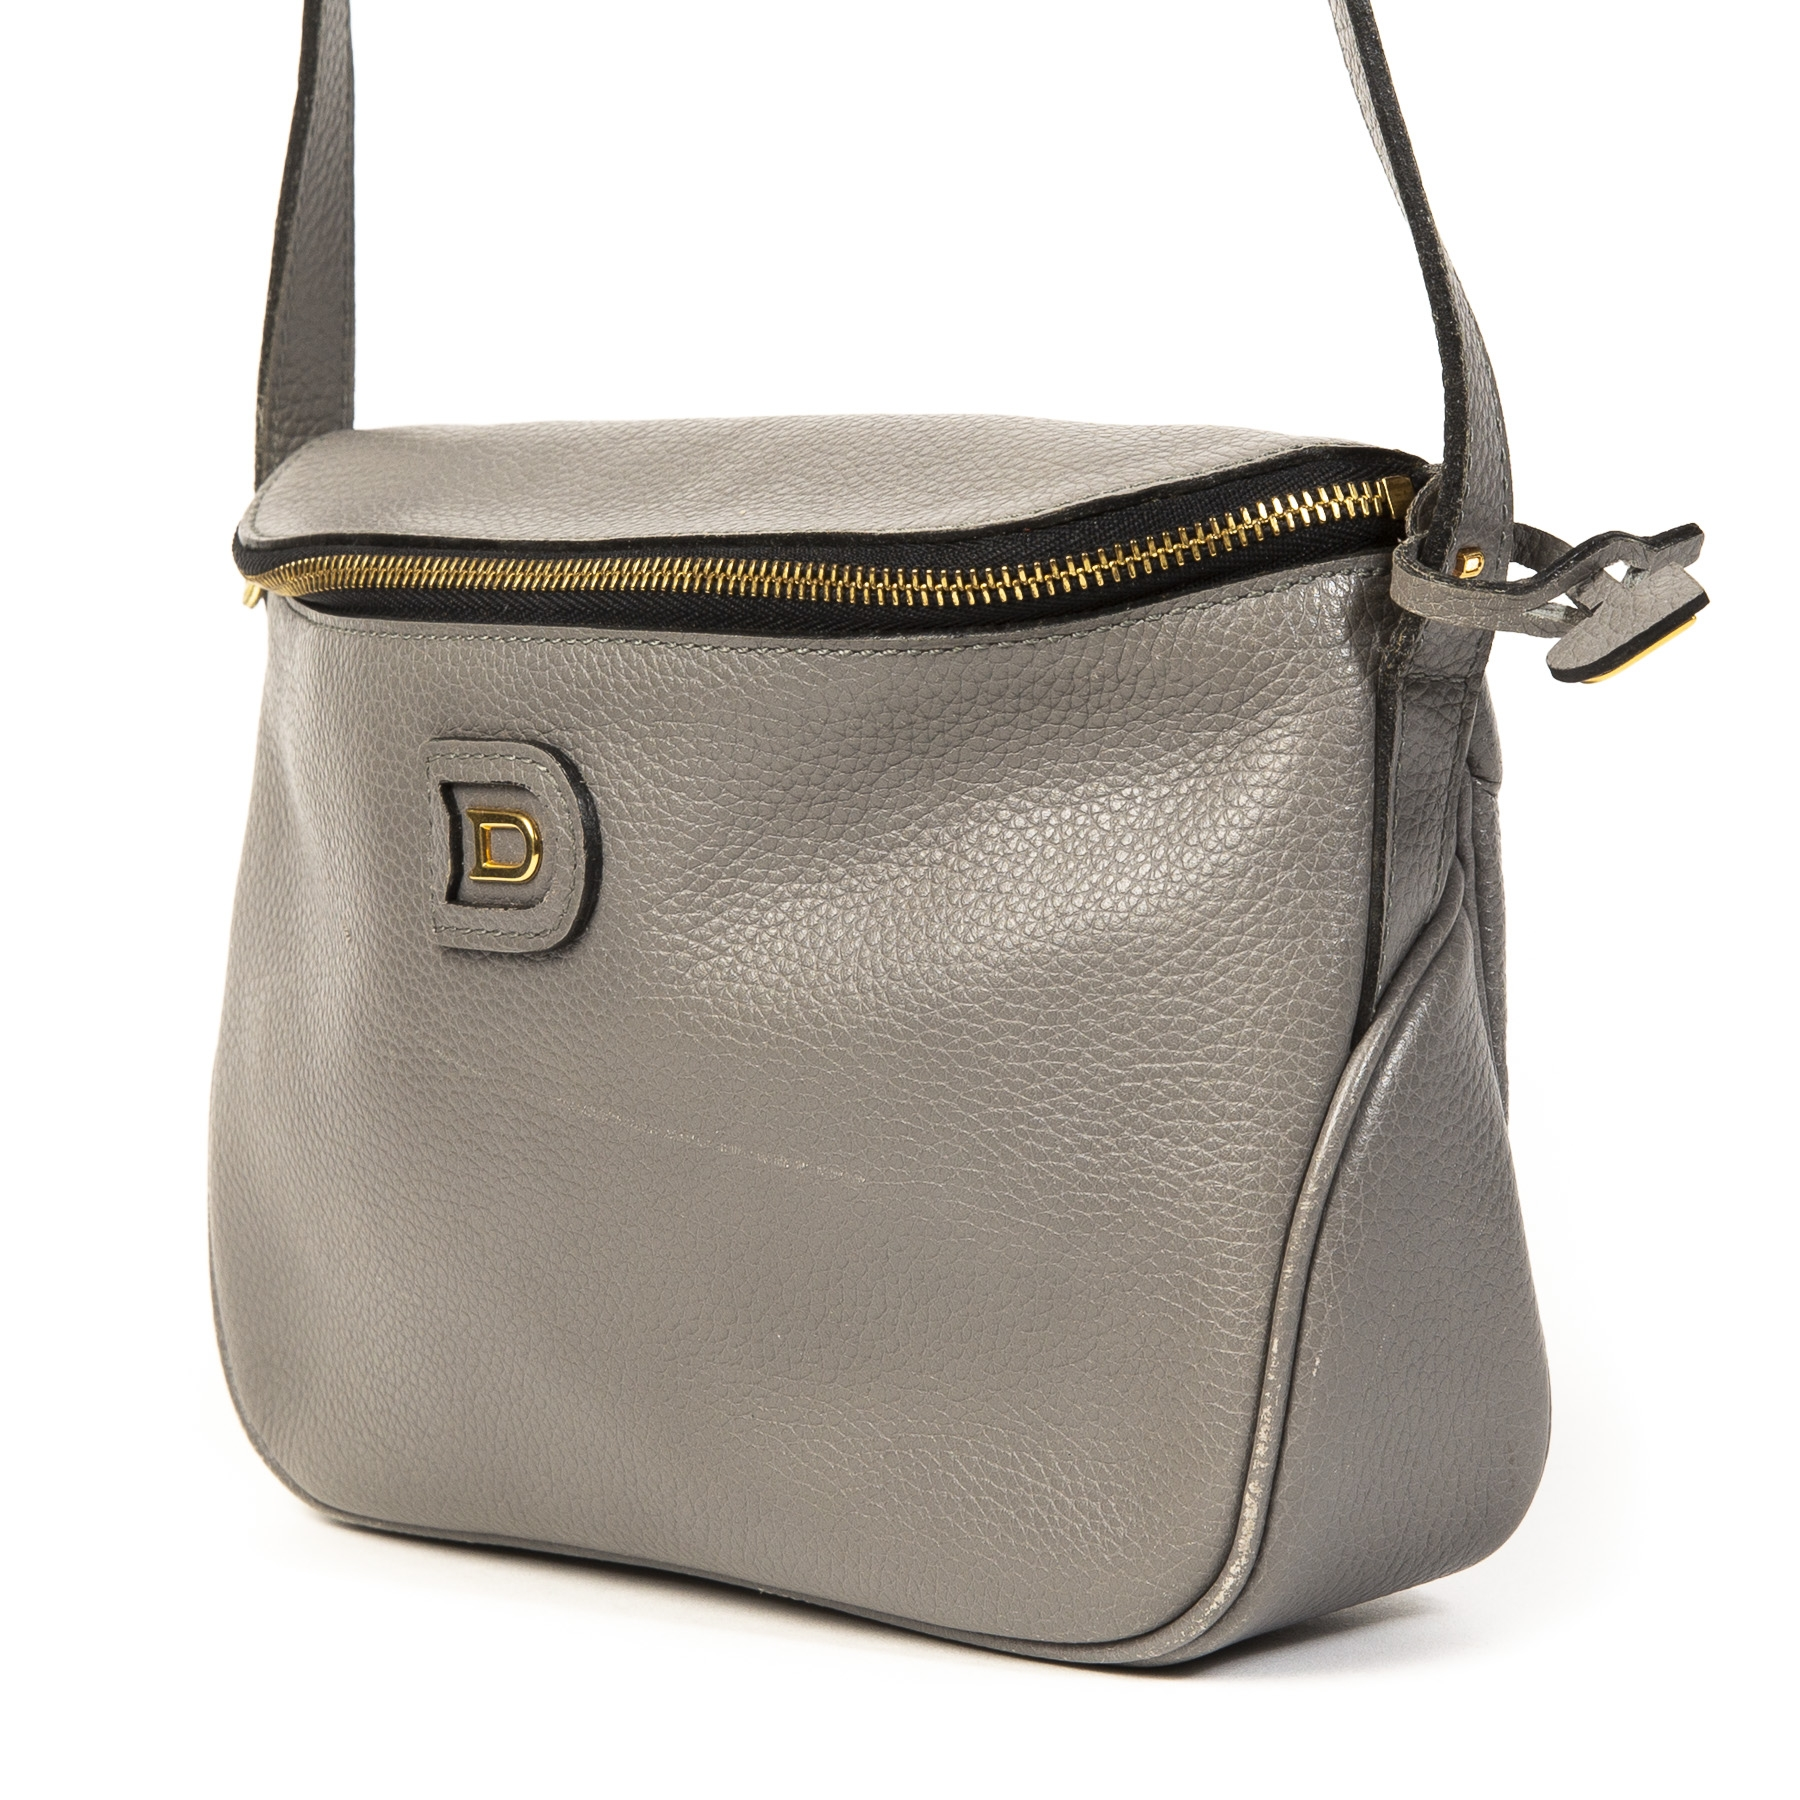 Delvaux Macao Grey Leather Crossbody Bag